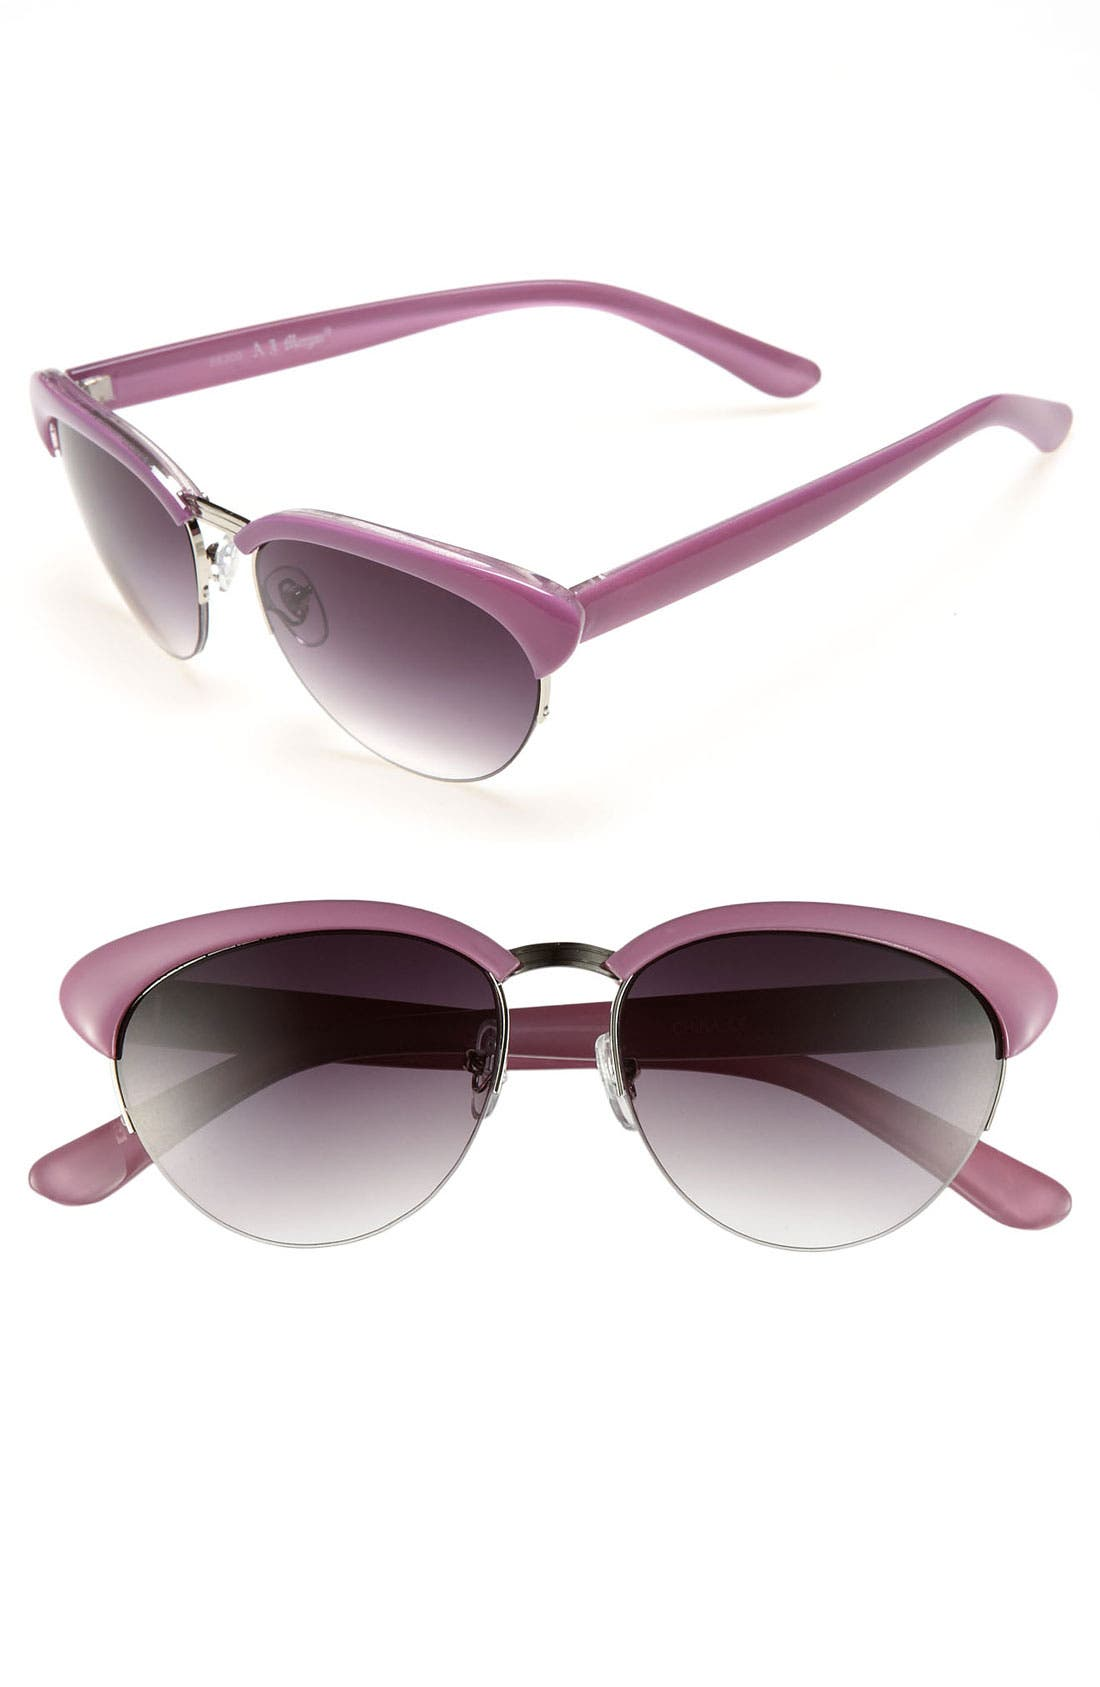 Main Image - A.J. Morgan 'Cupcake' Sunglasses